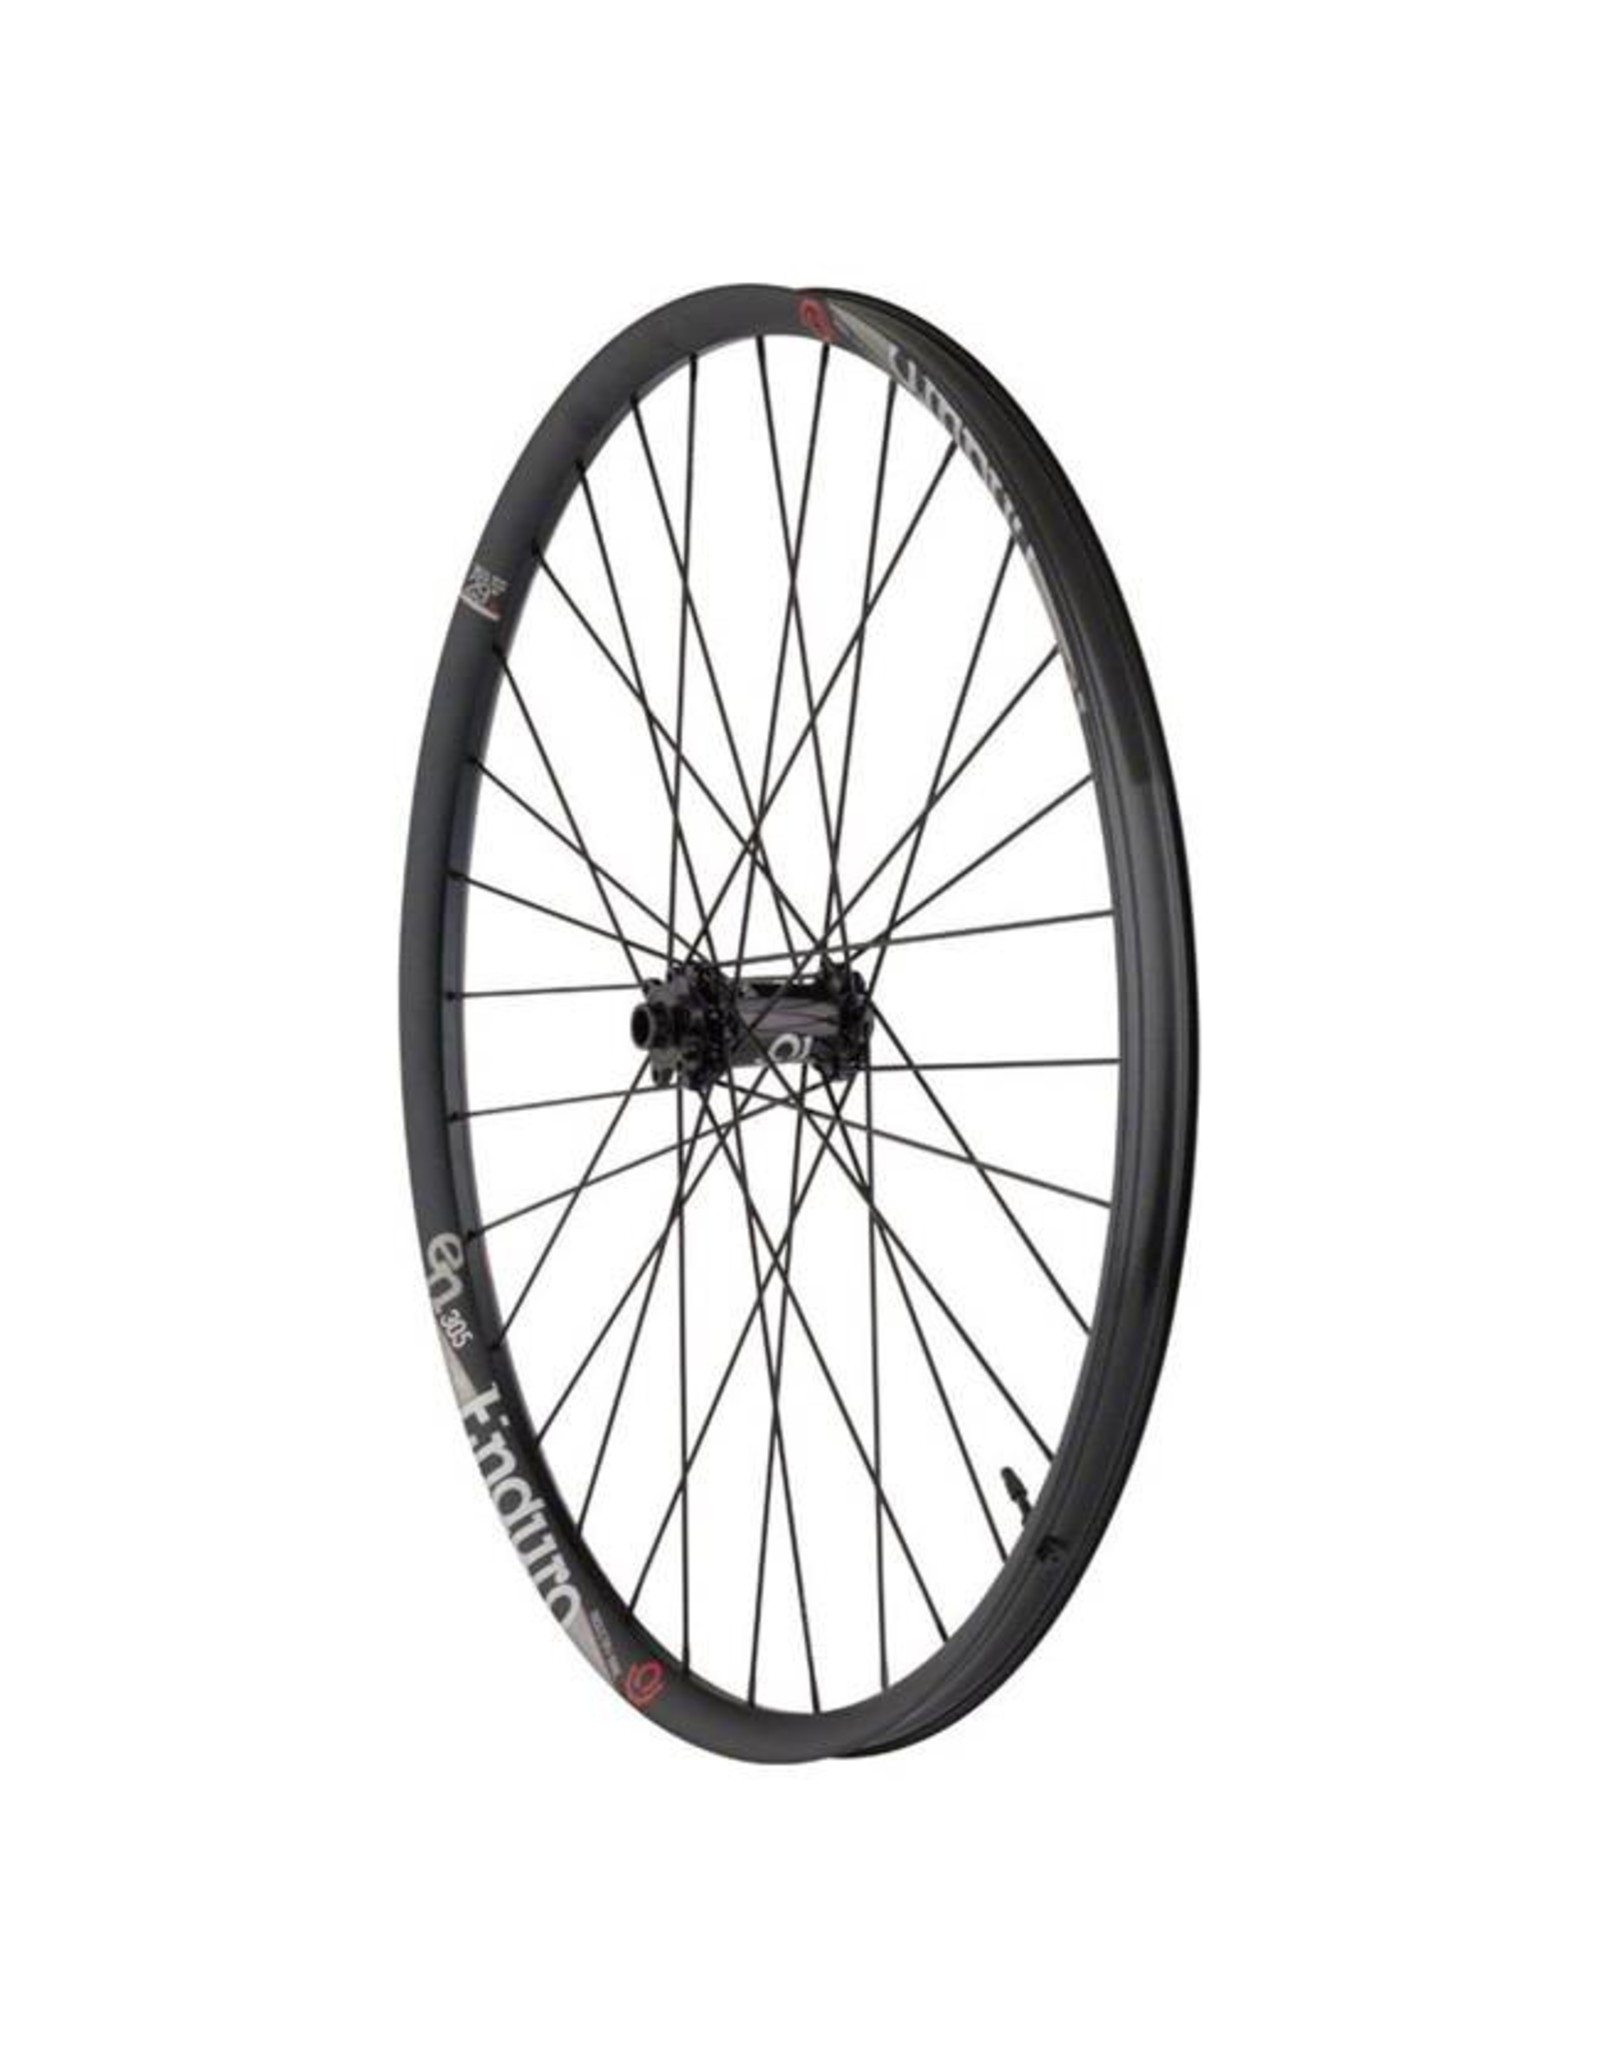 "Industry Nine Industry Nine  Enduro 305  Wheelset: 29"" 15 x 110mm Thru Axle Front, 12 x 148mm Thru Axle Rear, SRAM XD Freehub, Black"